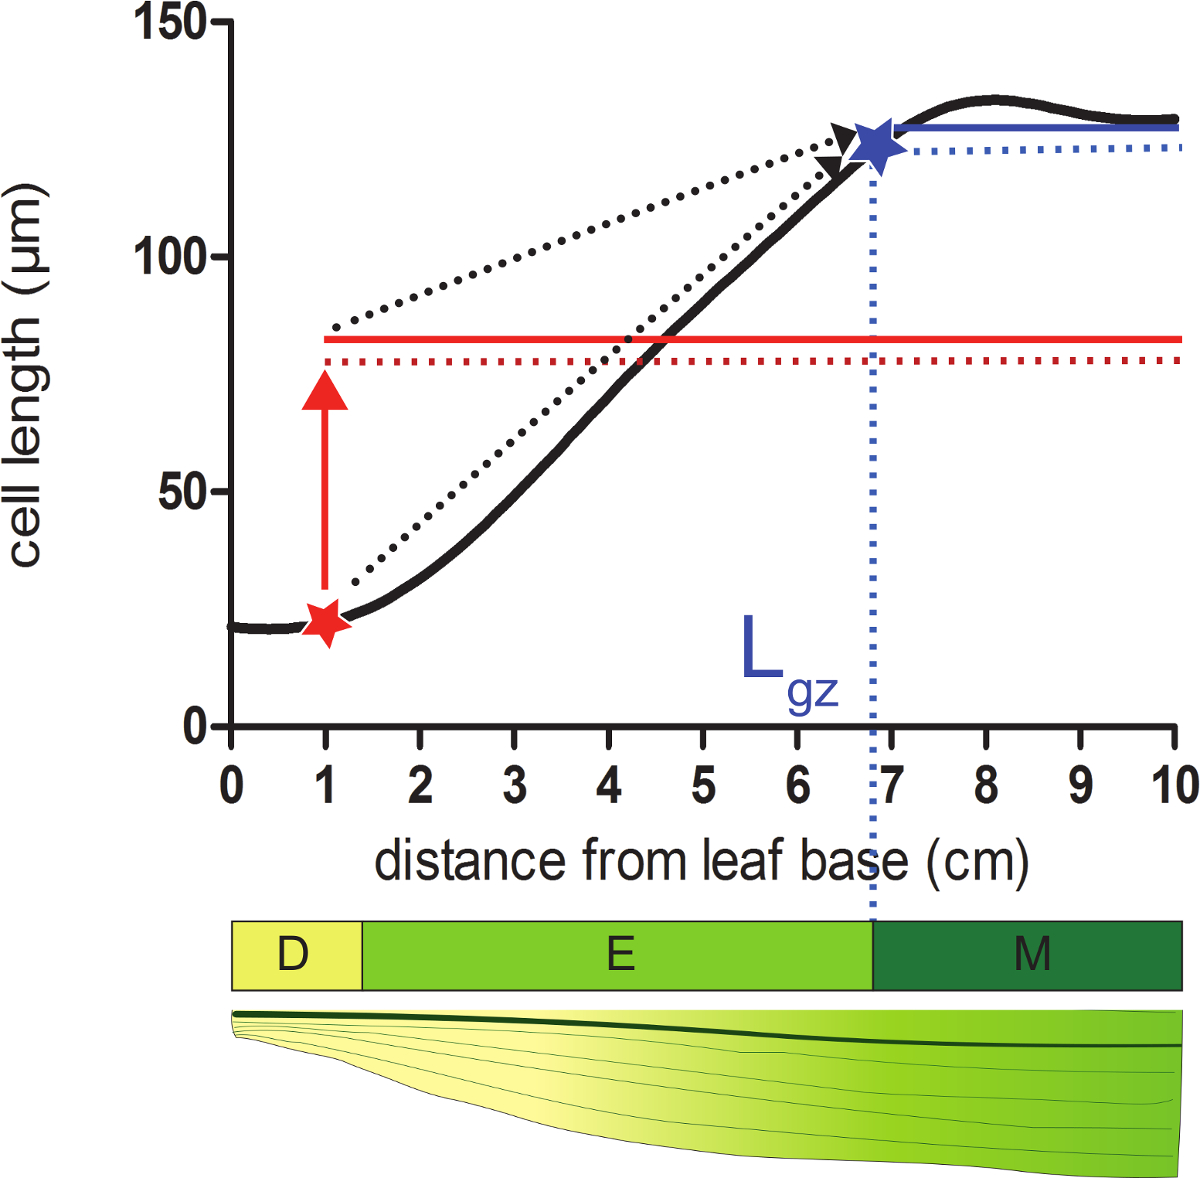 hight resolution of dashed arrows indicate the convergence between the local size and 95 of the average size over the distal portion of the leaf when moving from the basal